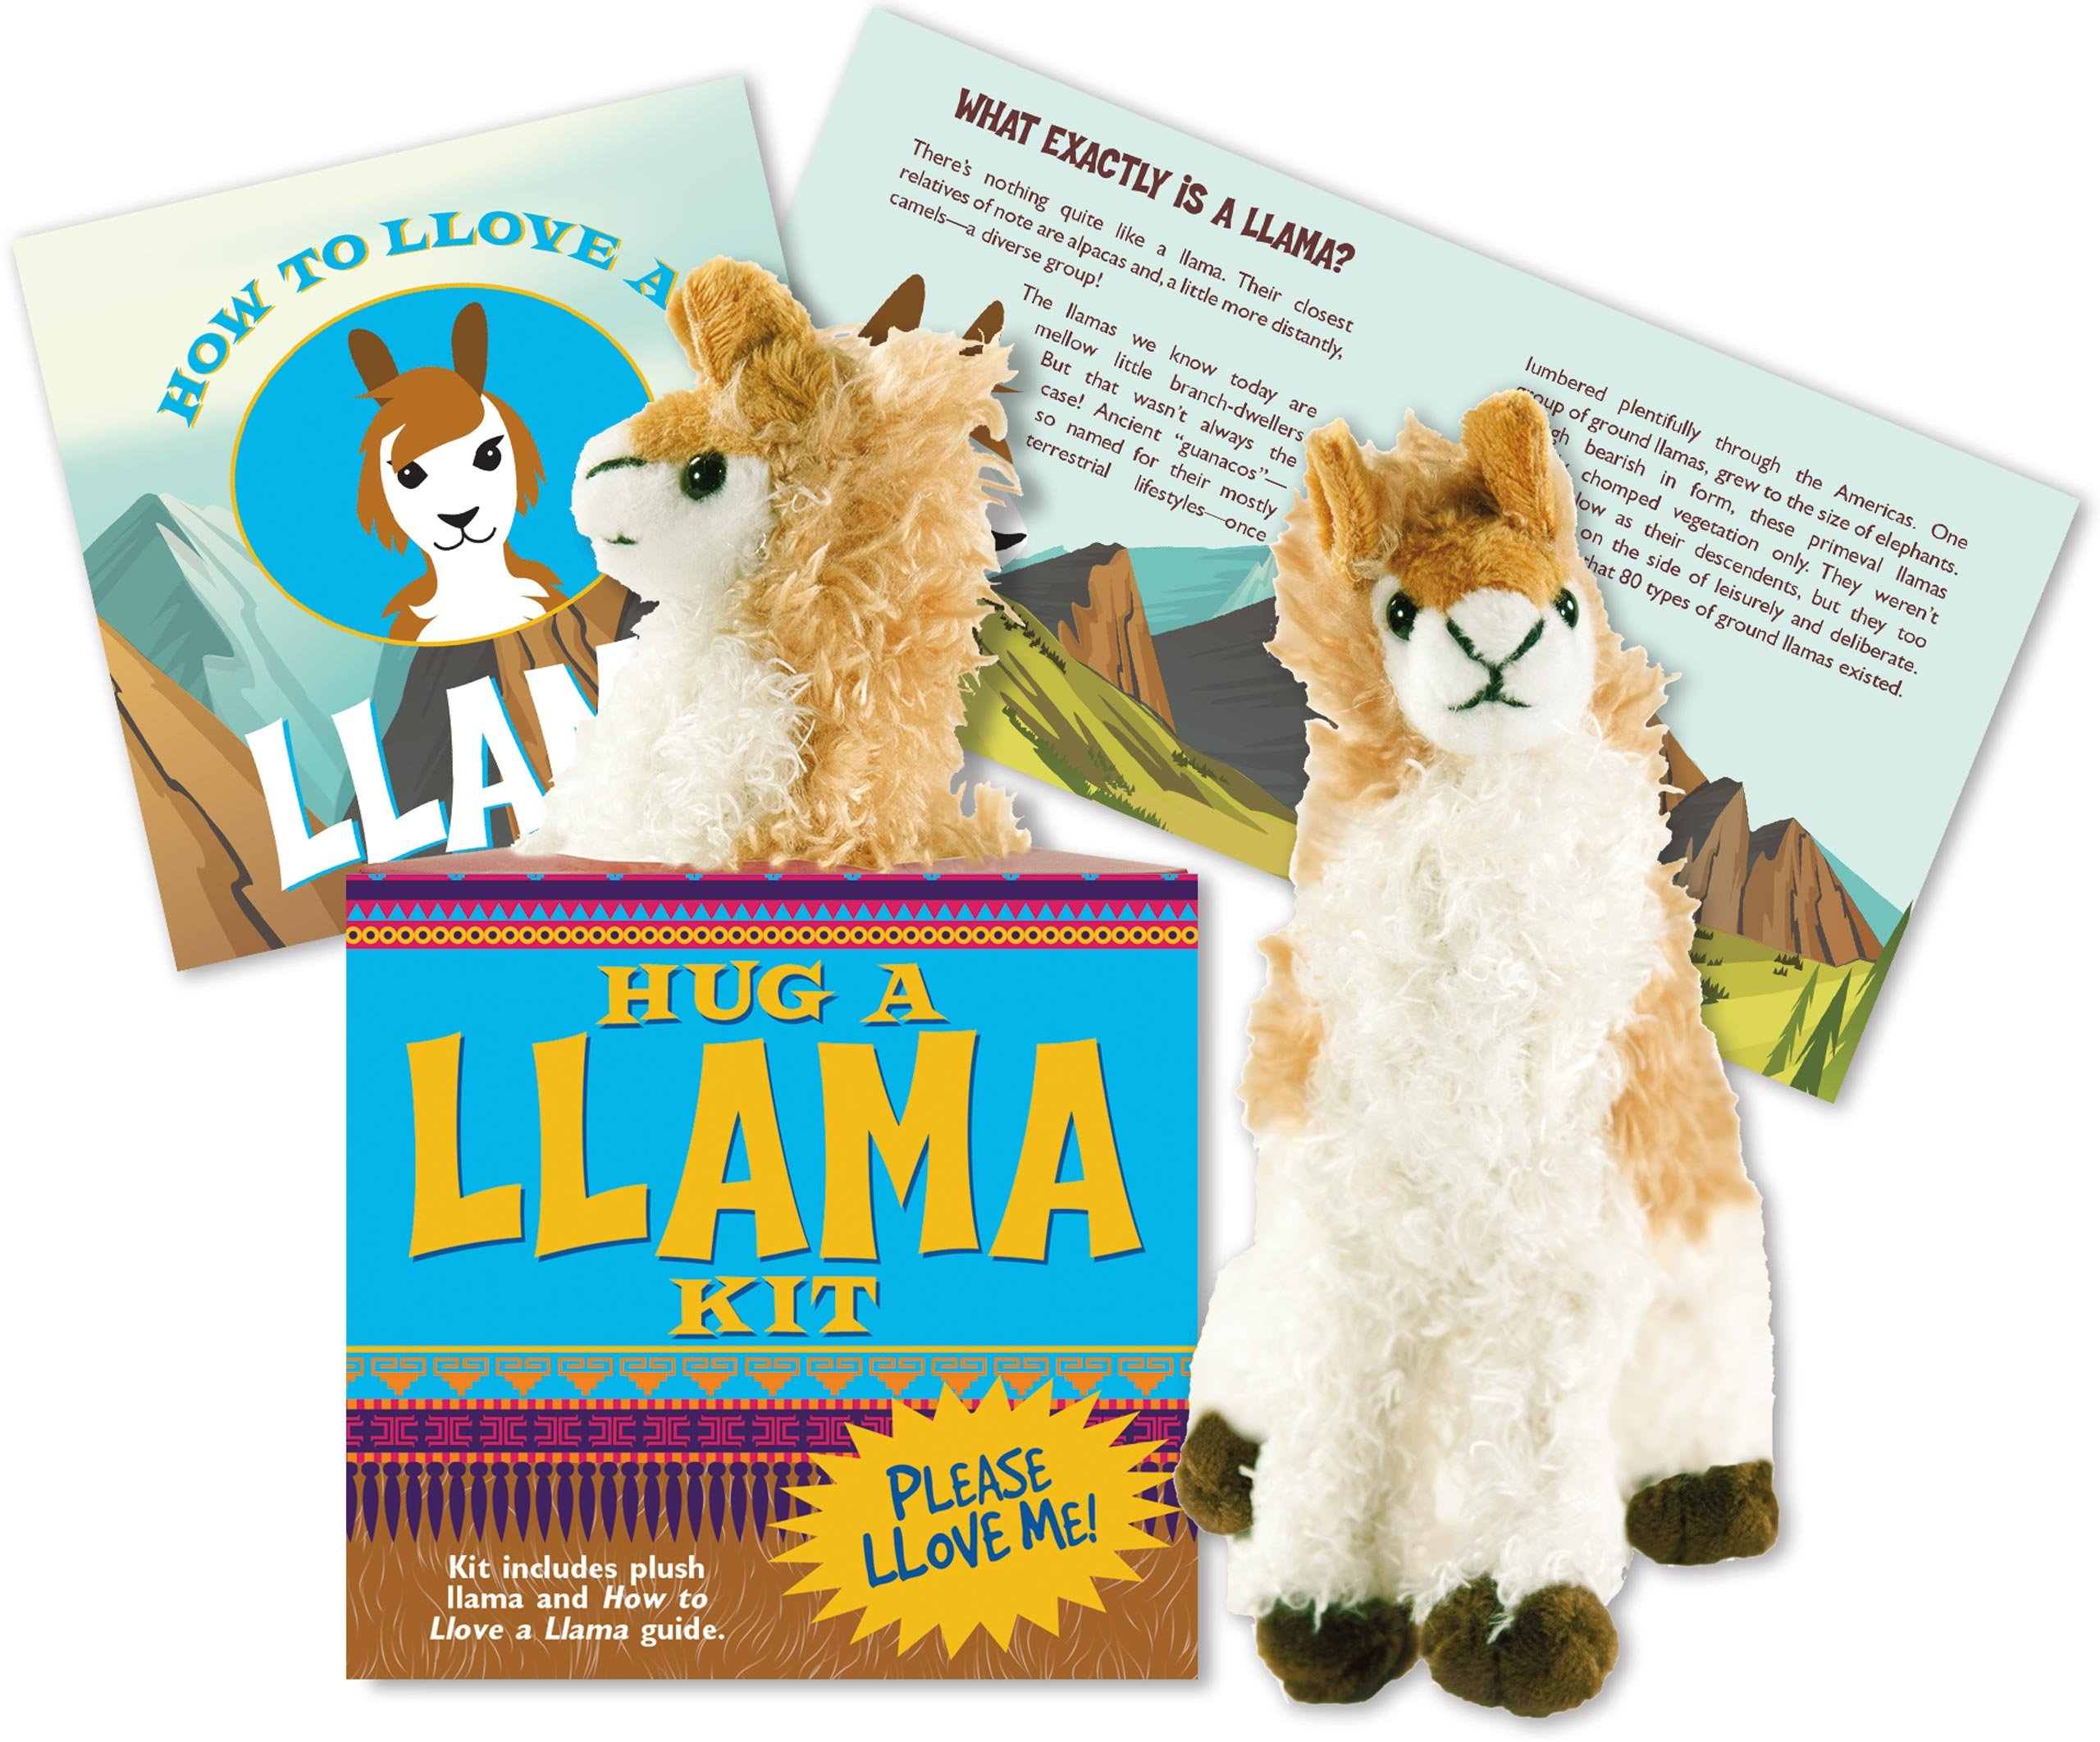 Hug a llama kit plush toy and book peter pauper press hug a llama kit plush toy and book peter pauper press 9781441322159 amazon books solutioingenieria Gallery